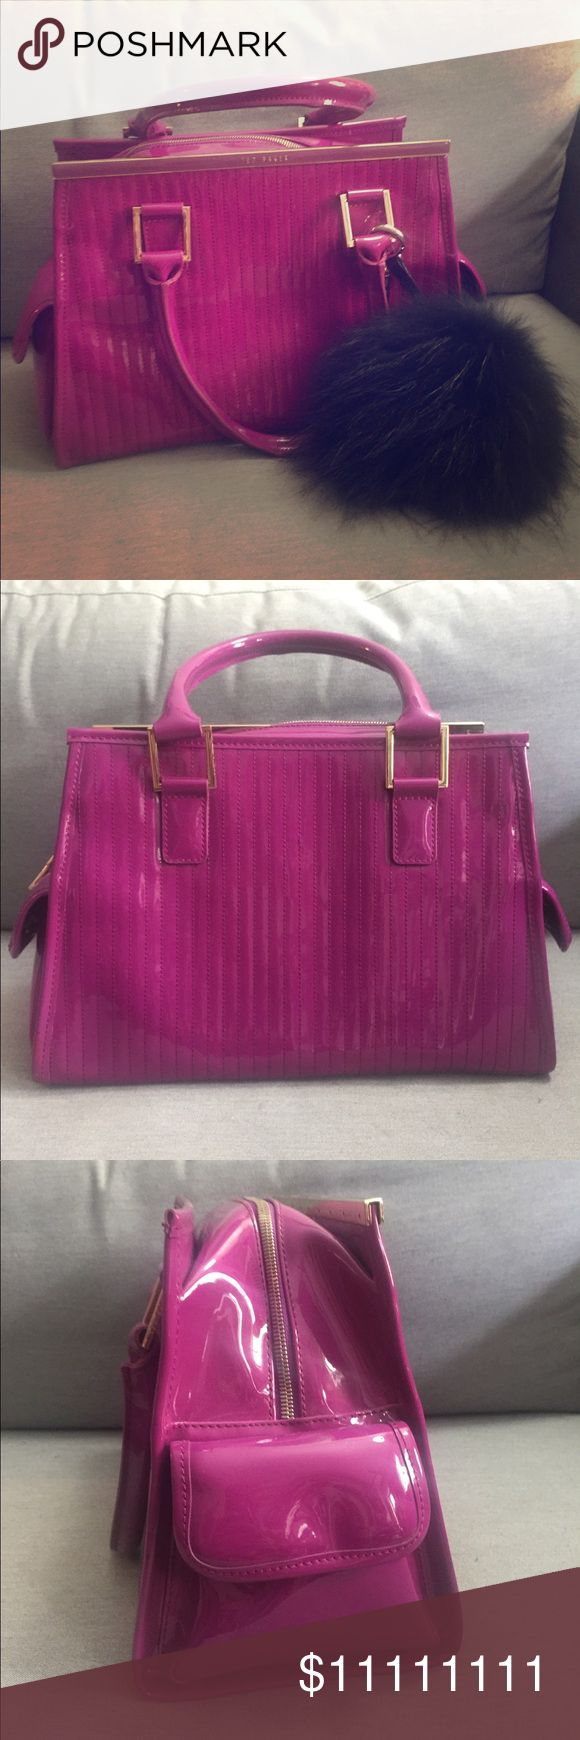 Ted Baker Beautiful Purple Patent Leather Satchel Stunning design and color! Purple Patent leather with gold tone hardware. Double handles and side pockets with magnetic flap closure. Interior lined with super adorable Doggy Print. The interior has slip and zip pockets. Medium size. Excellent pre owned condition. No dust bag, fur charm not included. Feel free to ask questions. Bundle 2 or more items to get discount. 👍🏻🌸😊 Trade-in value is higher. Ted Baker Bags Satchels